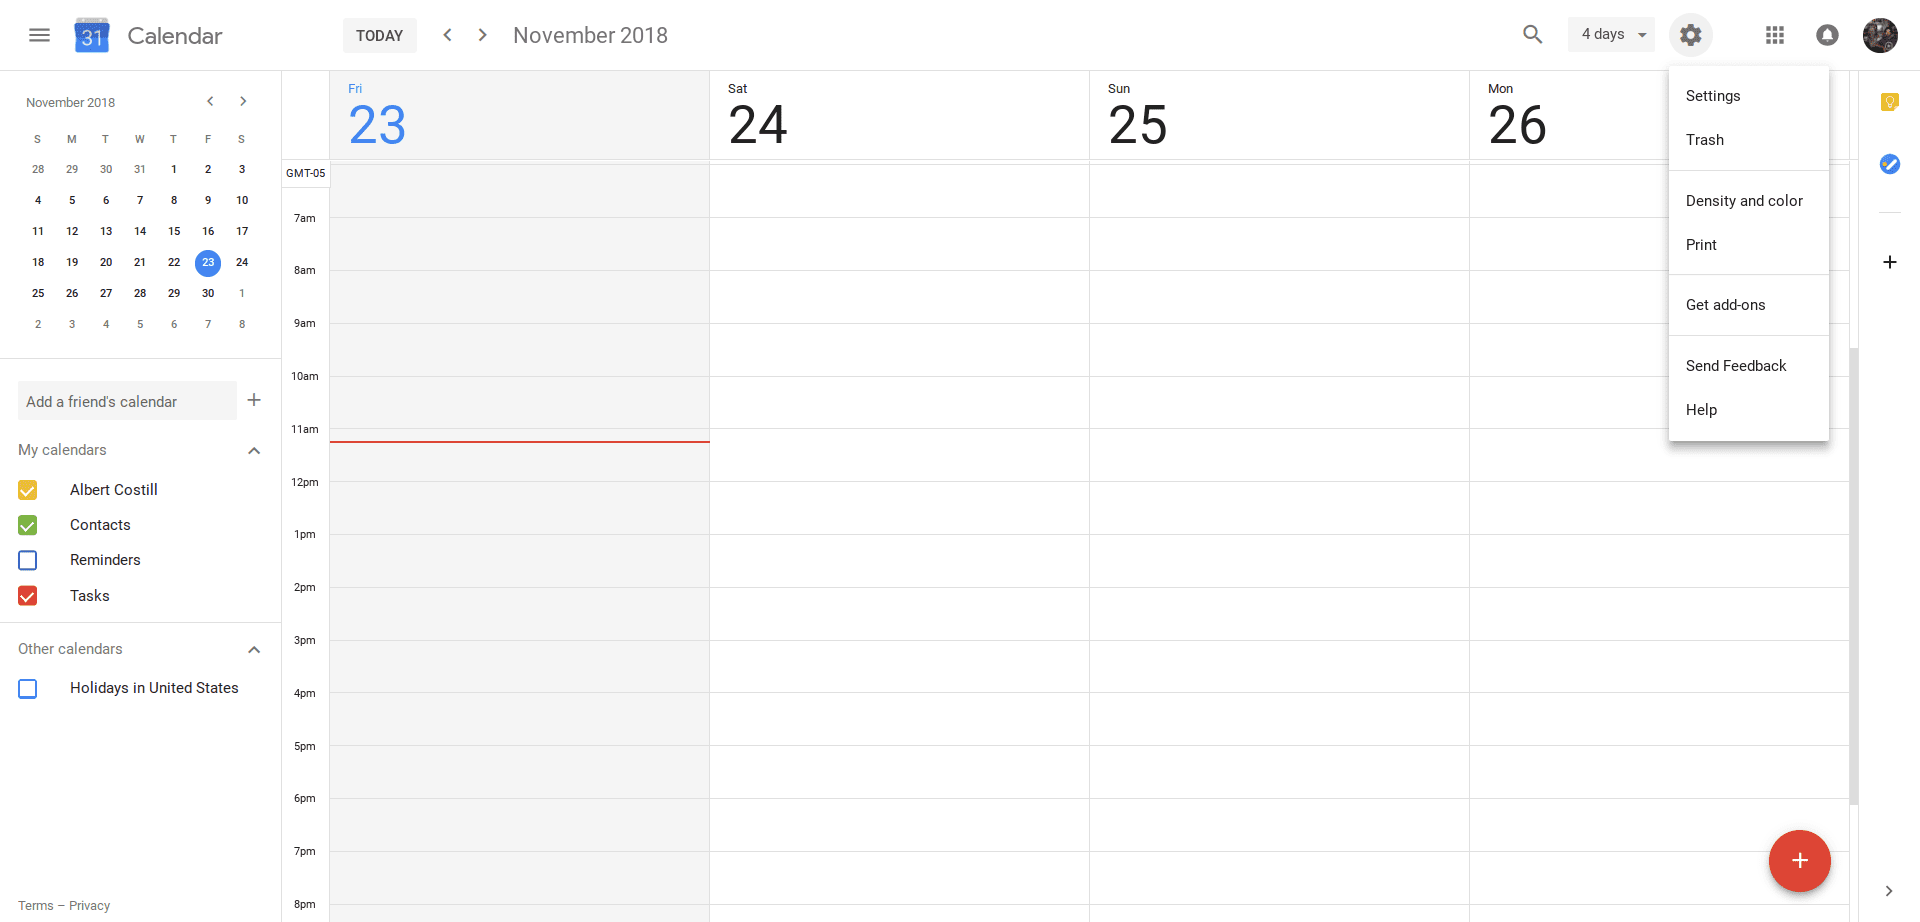 How To Disable Google Hangouts In Your Calendar - Calendar